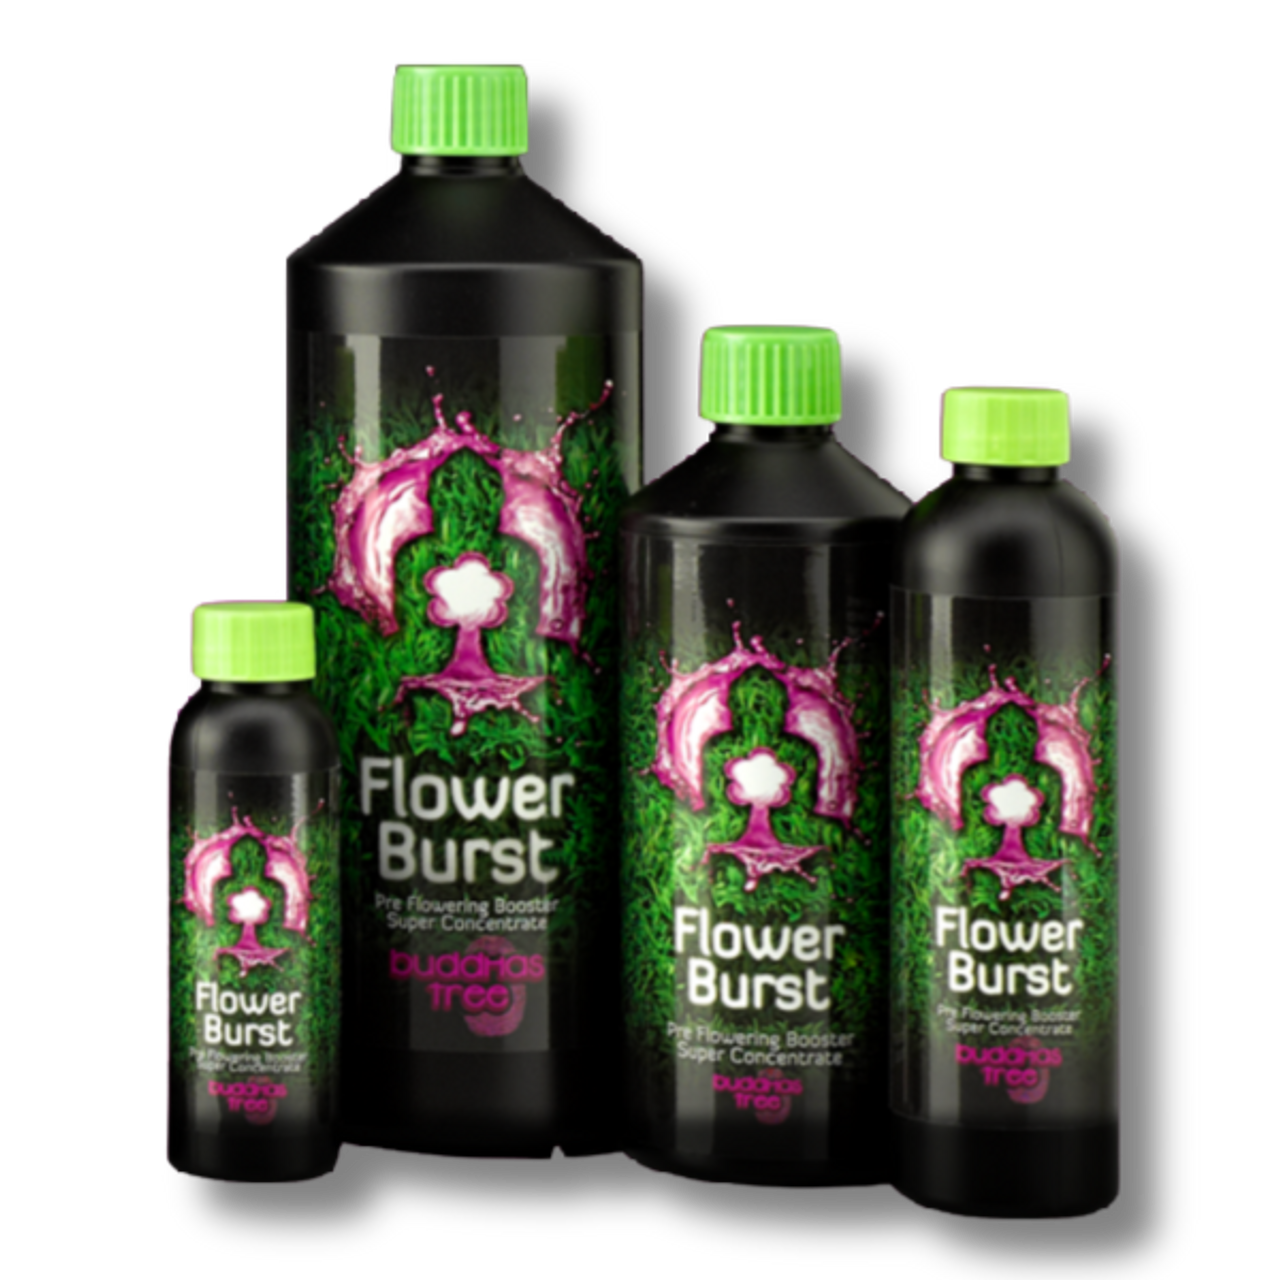 Flower Burst is a unique product from Buddhas Tree that has been specifically created for use during your plants pre-flowering and early flowering stage.